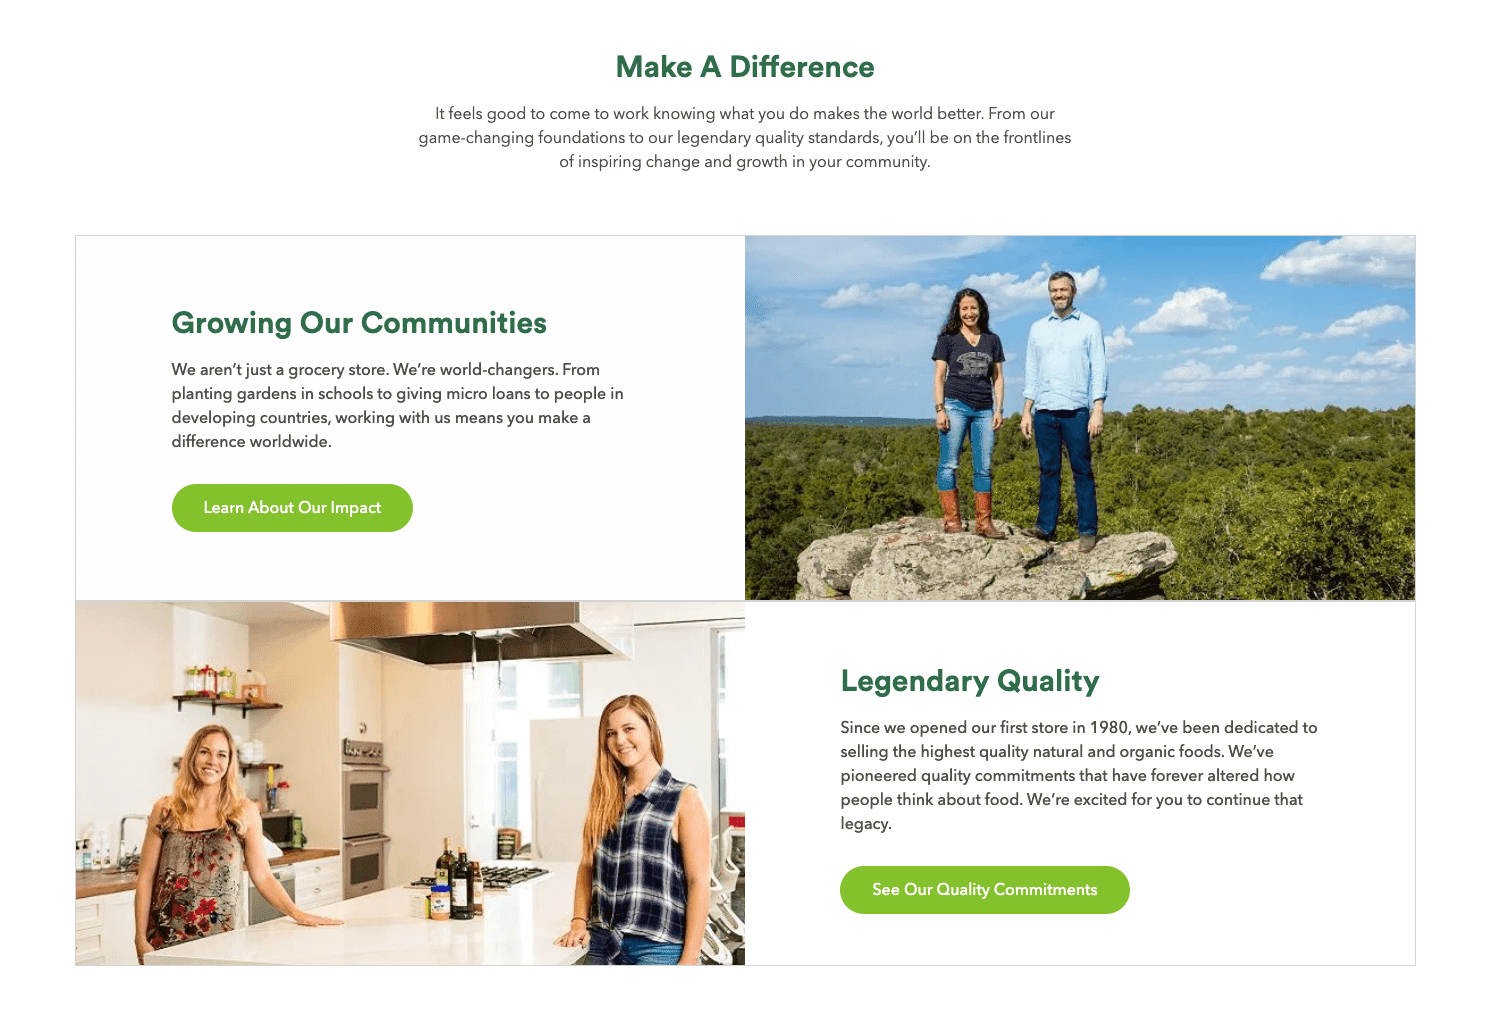 Whole Foods' careers website